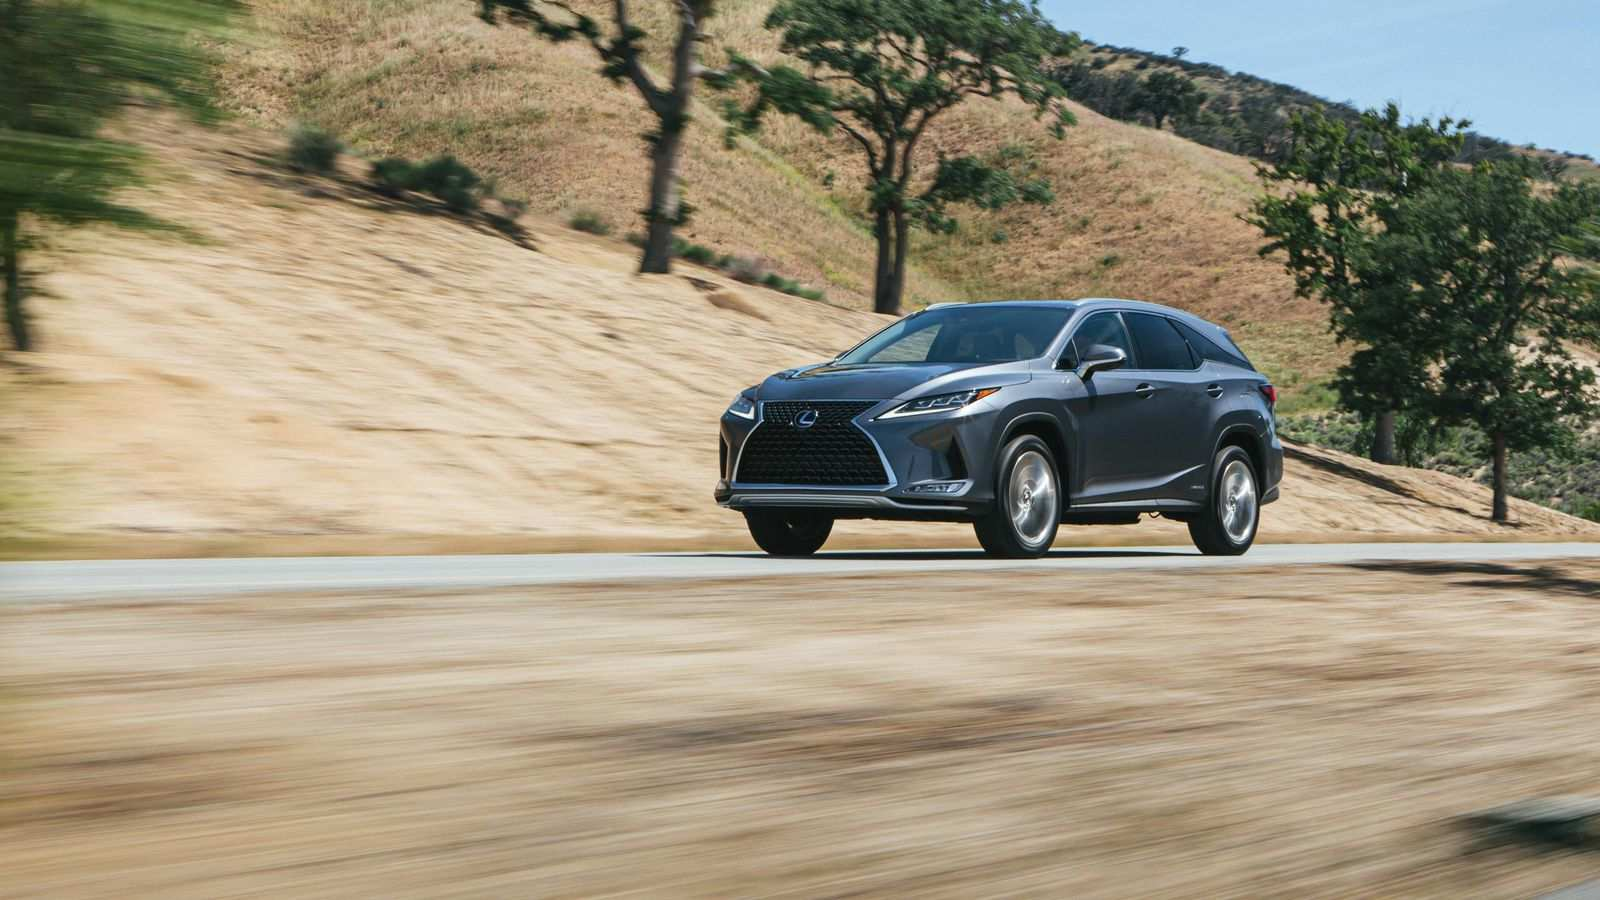 80 New When Will The 2020 Lexus Rx Come Out First Drive